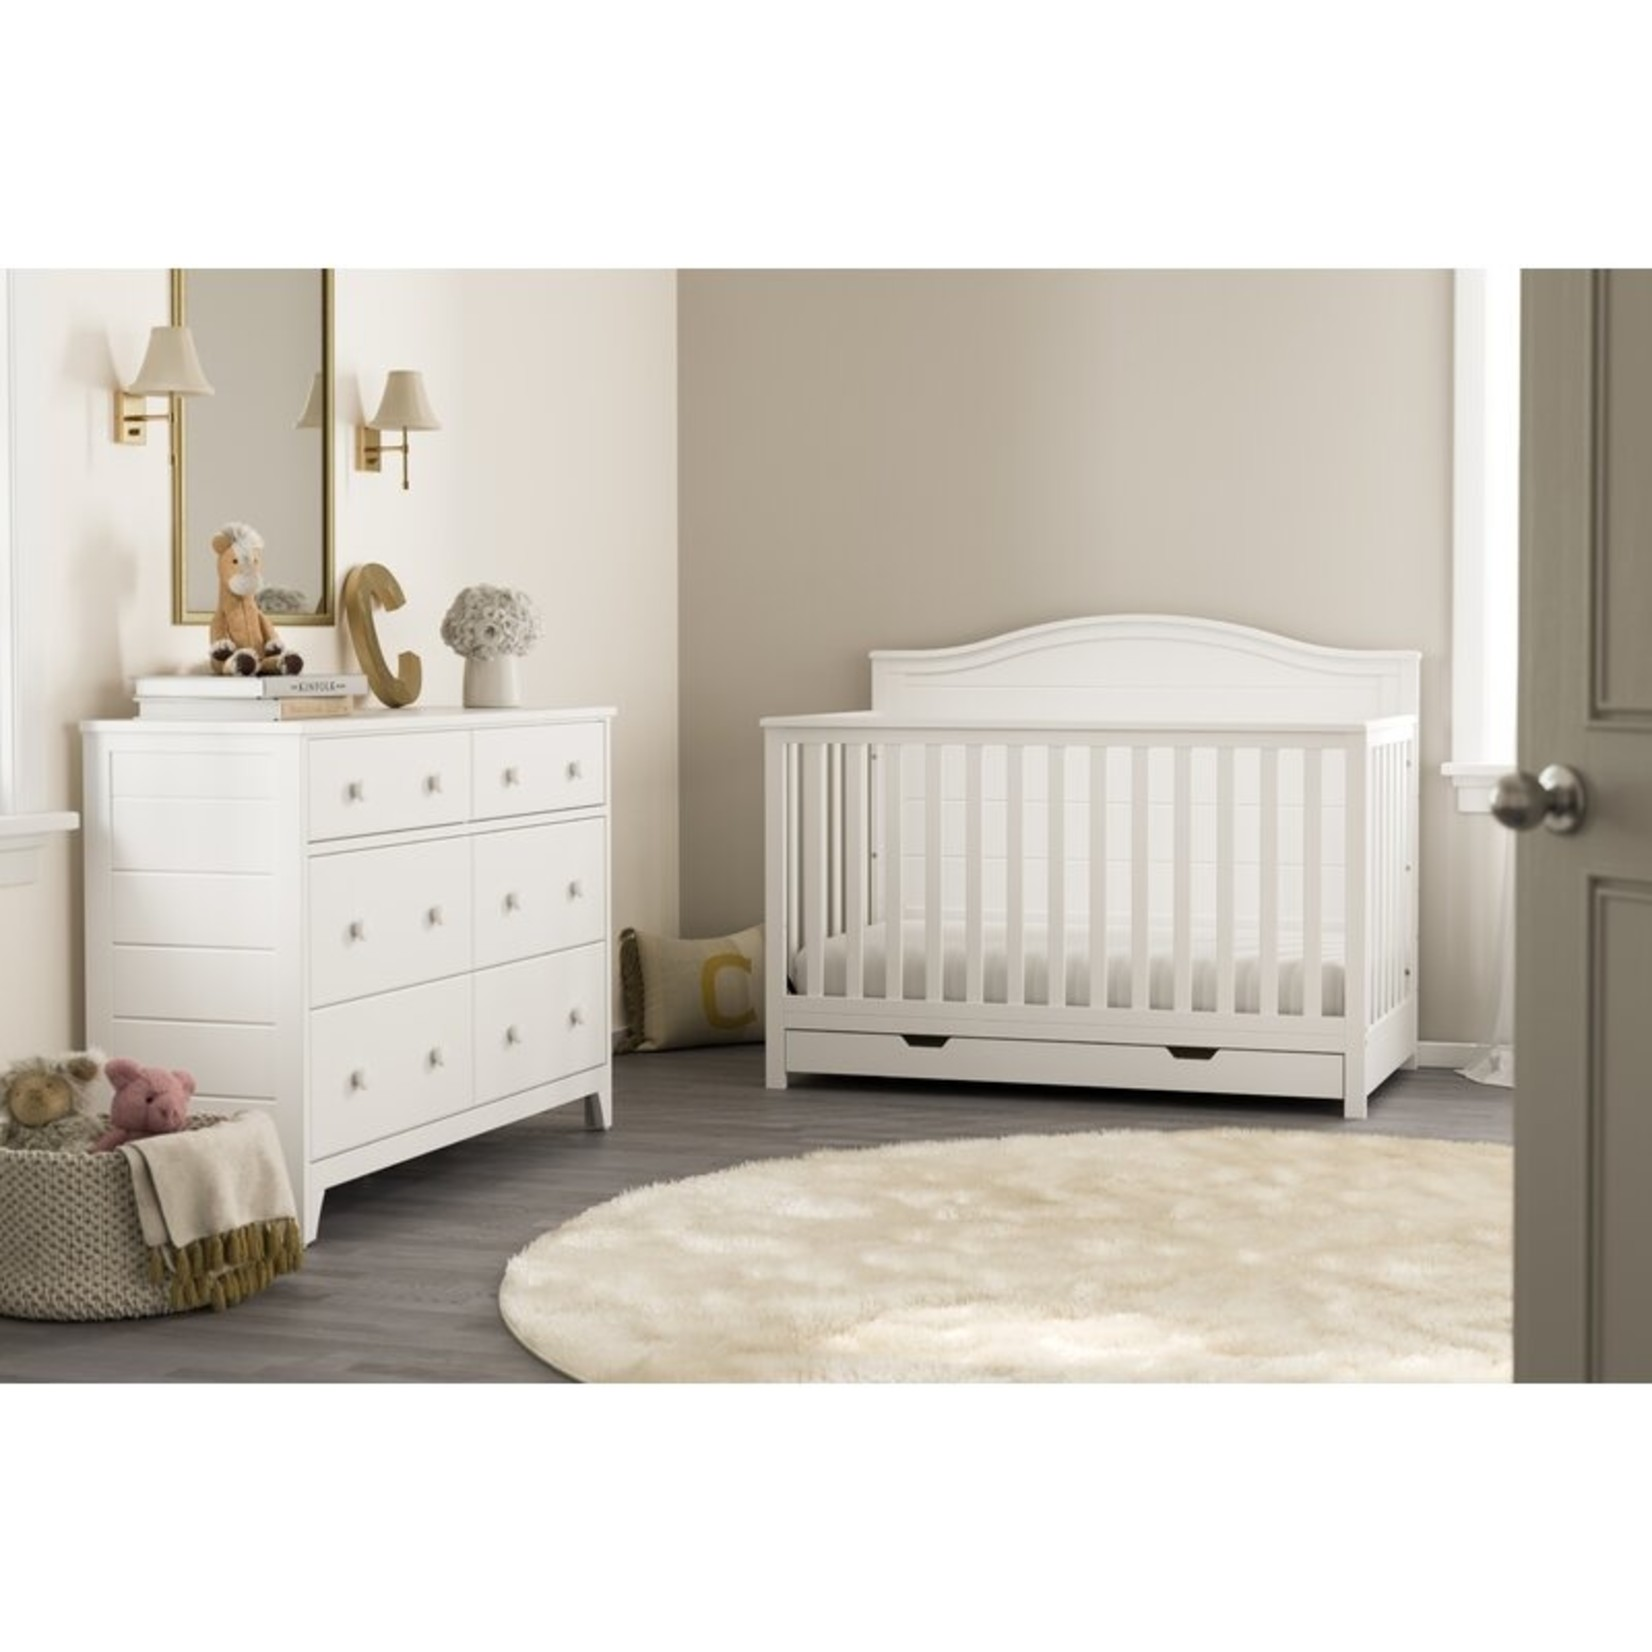 *Moss 4-in-1 convertible Crib with storage - White